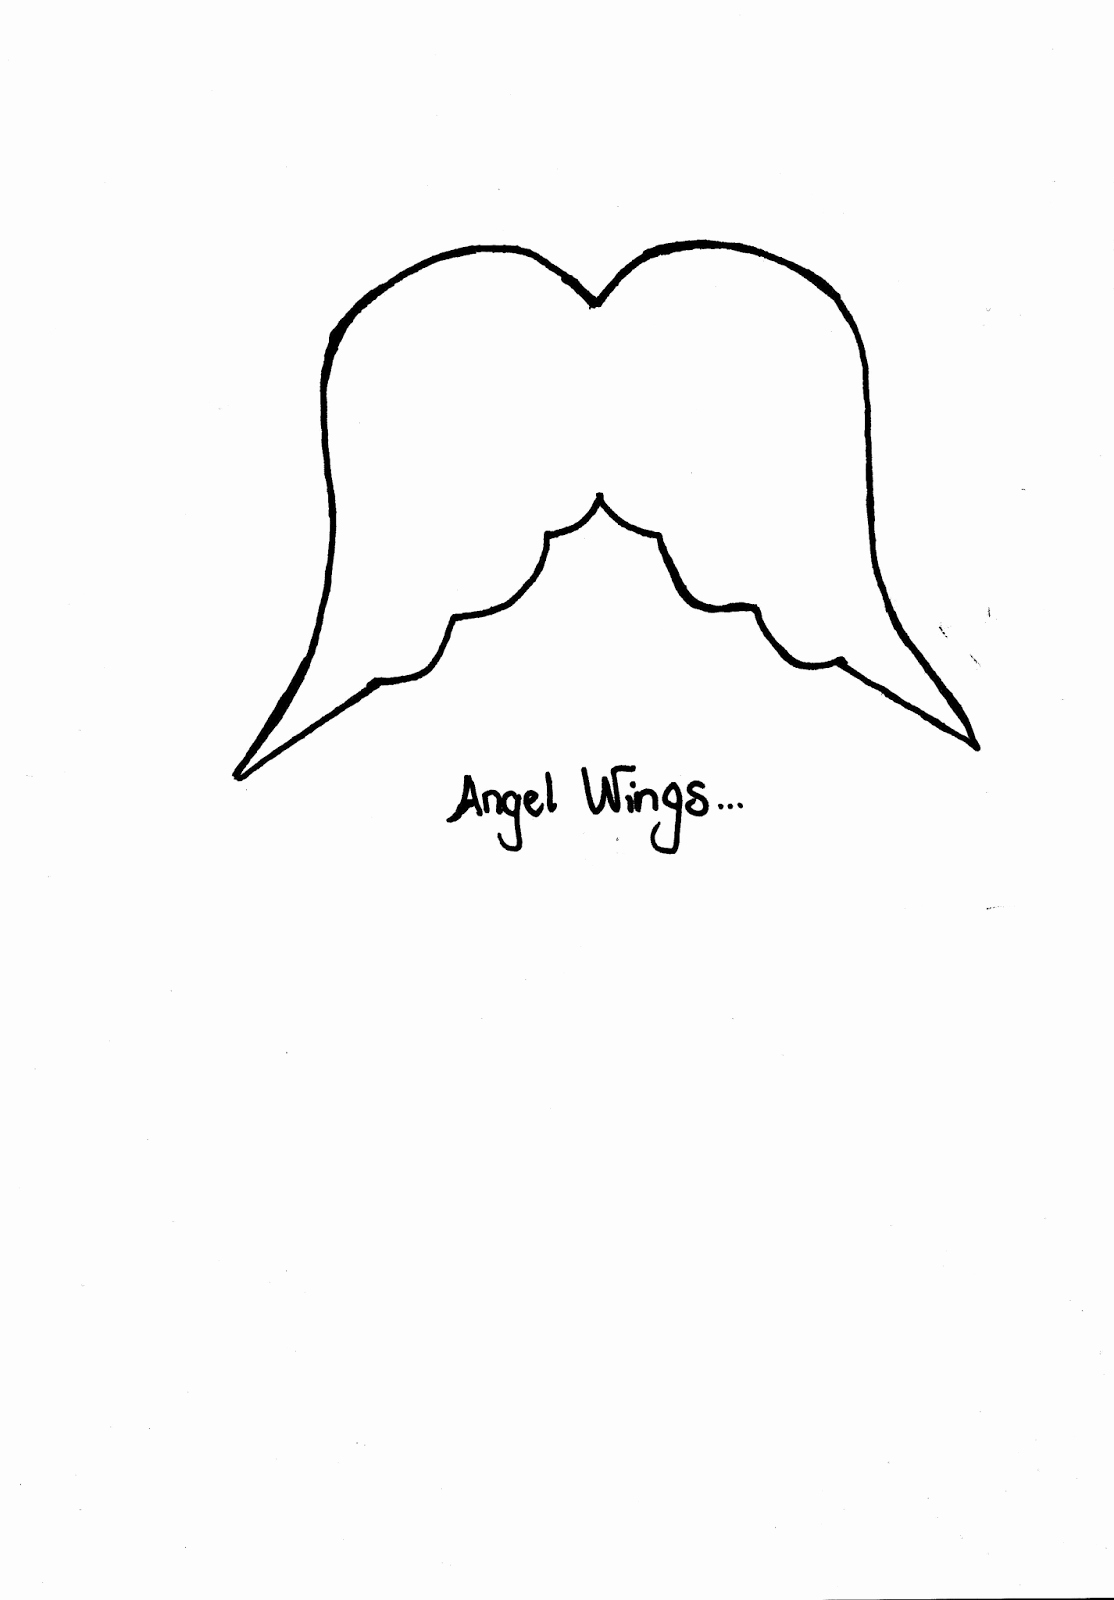 Angel Wing Templates Printable Lovely Mia Bella Passions Music Sheet Angels Wings Just for